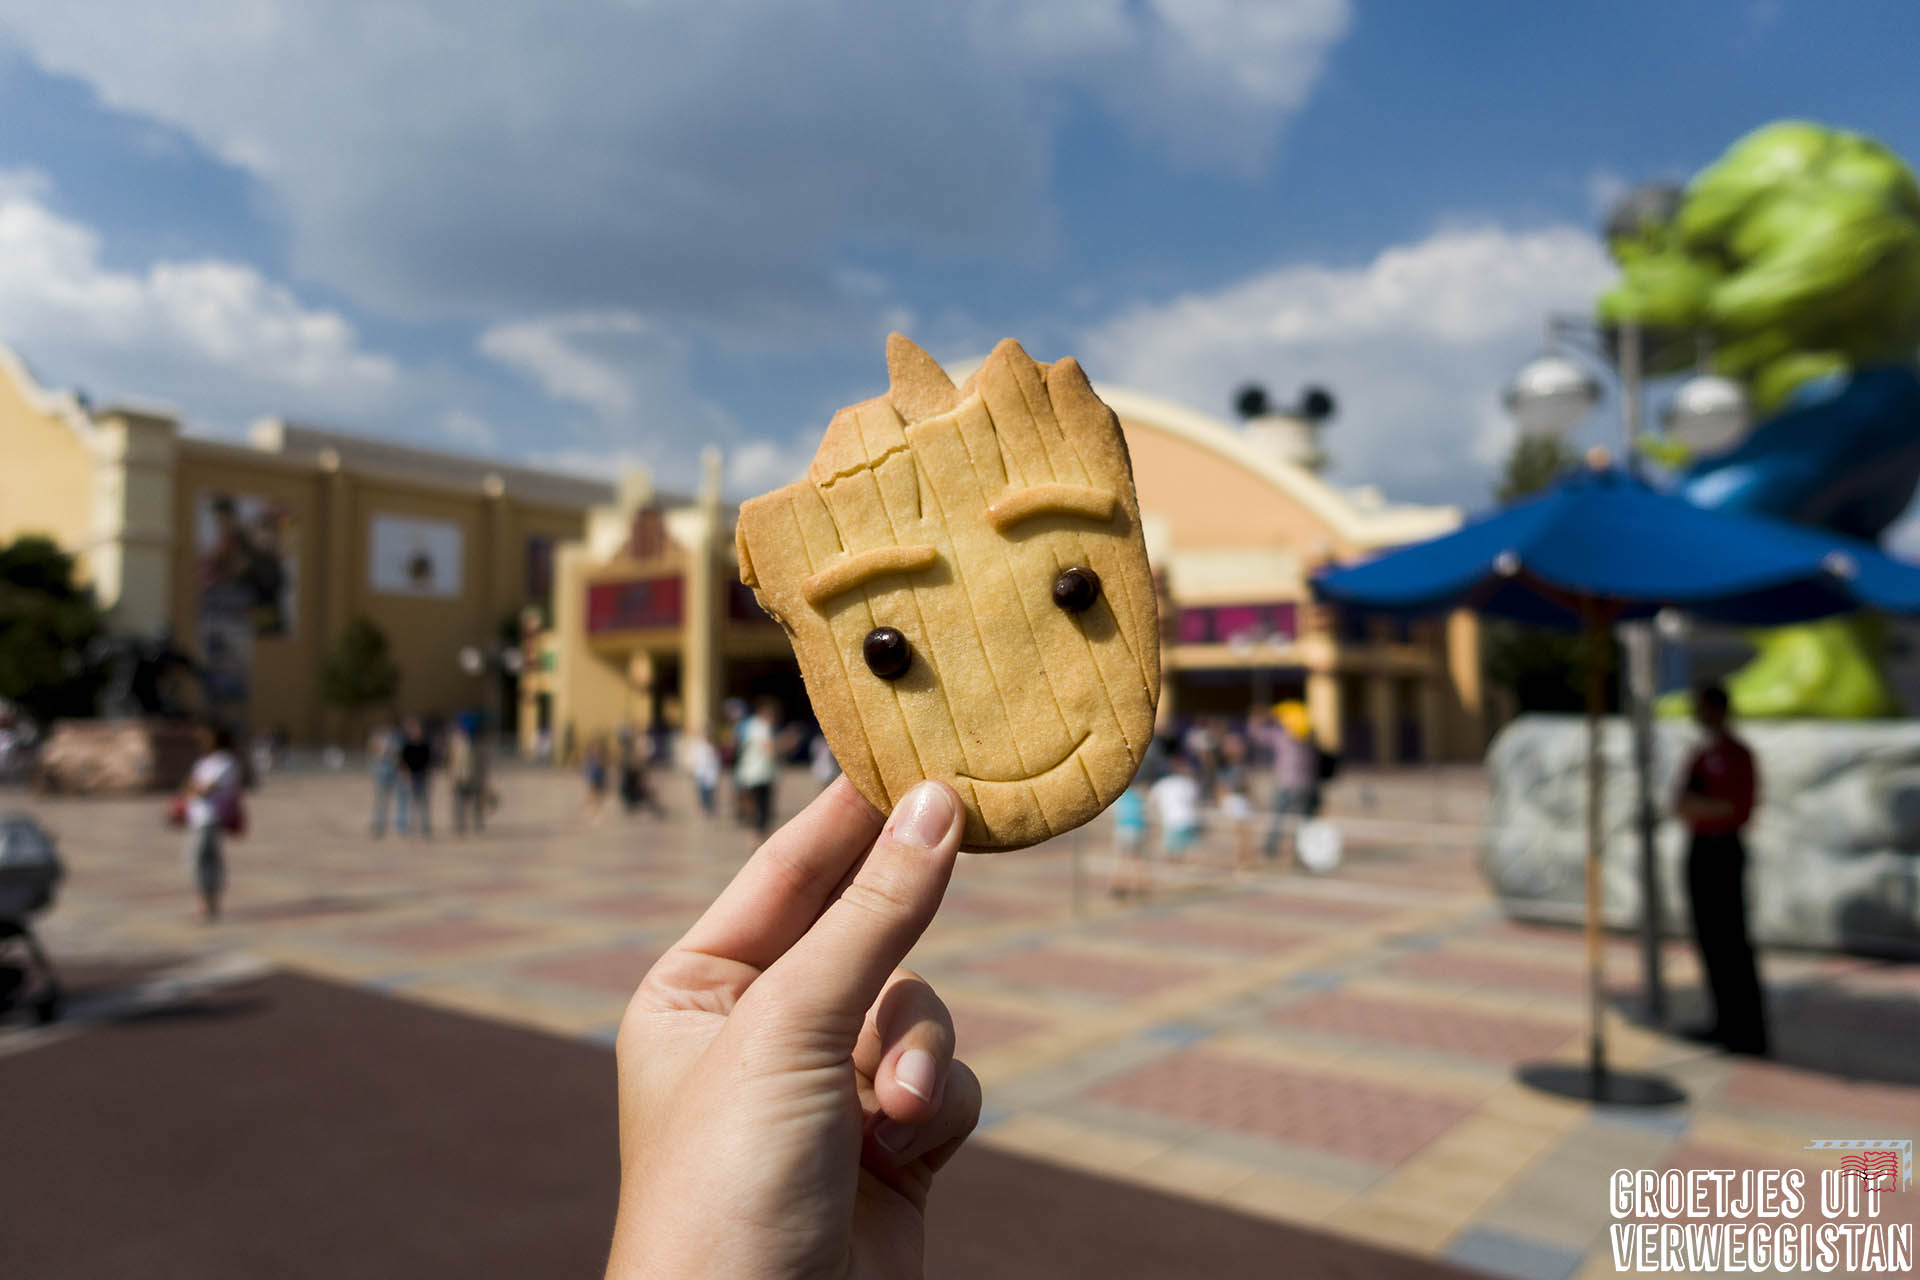 Koekje in de vorm van Groot uit Guardians of the Galaxy voor Studio 1 in Walt Disney Studios Park.